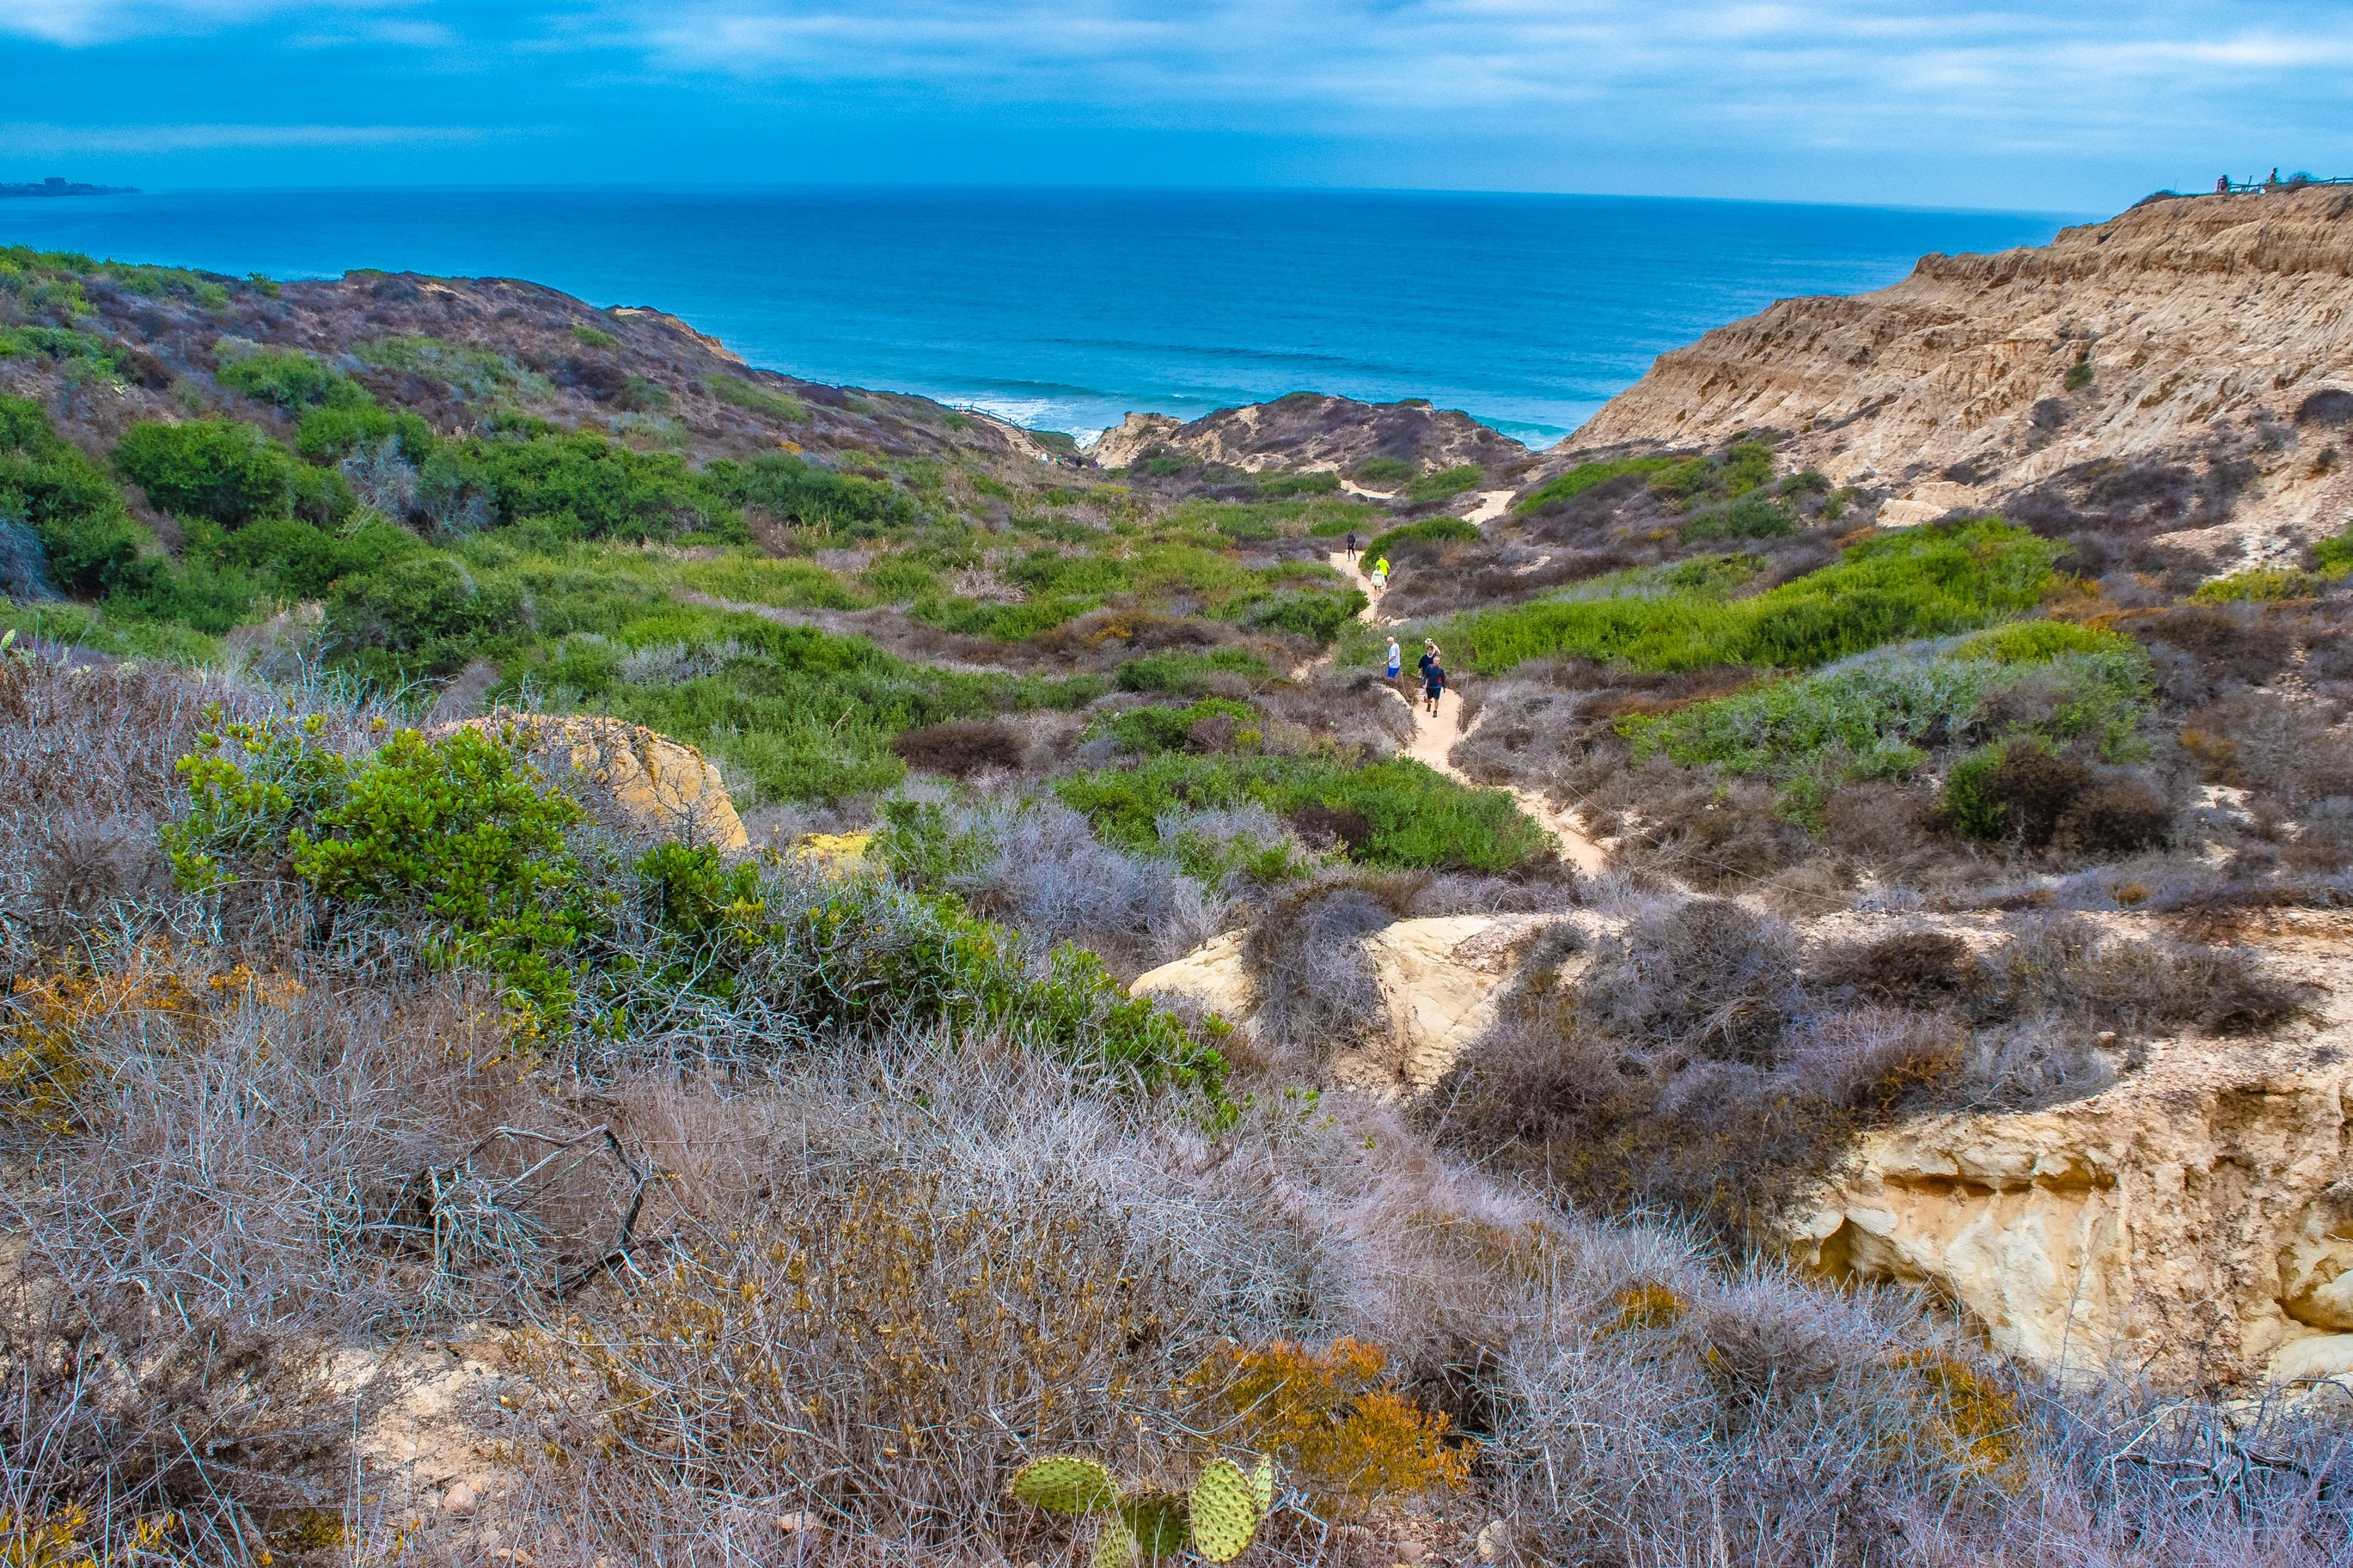 Trails at Torrey Pines Natural Reserve that over look the ocean.